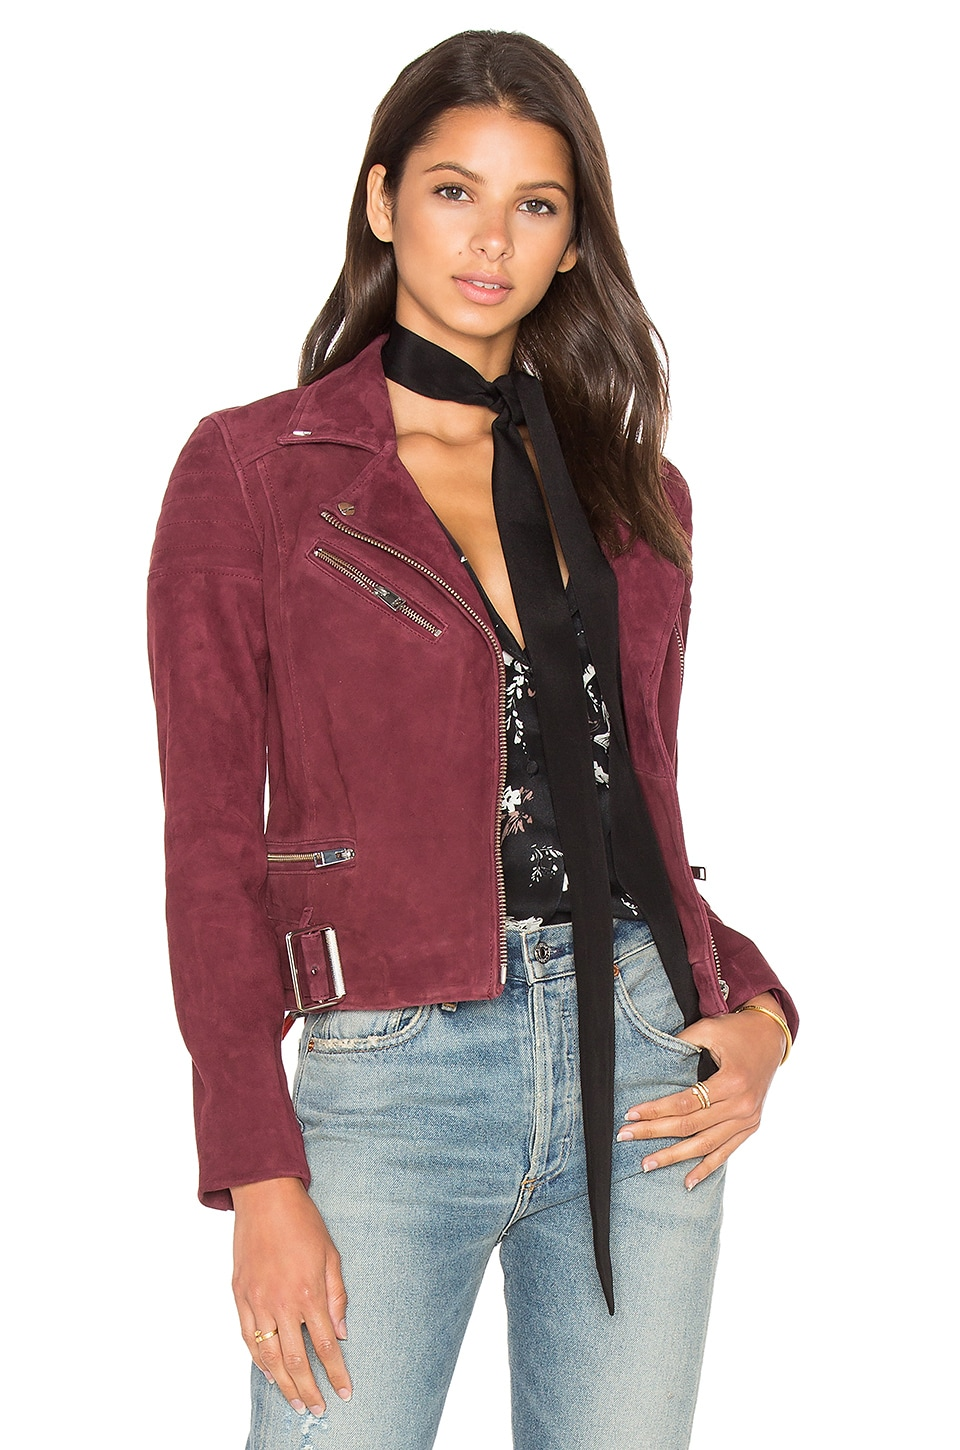 LAMARQUE Laetica Jacket in Burgundy